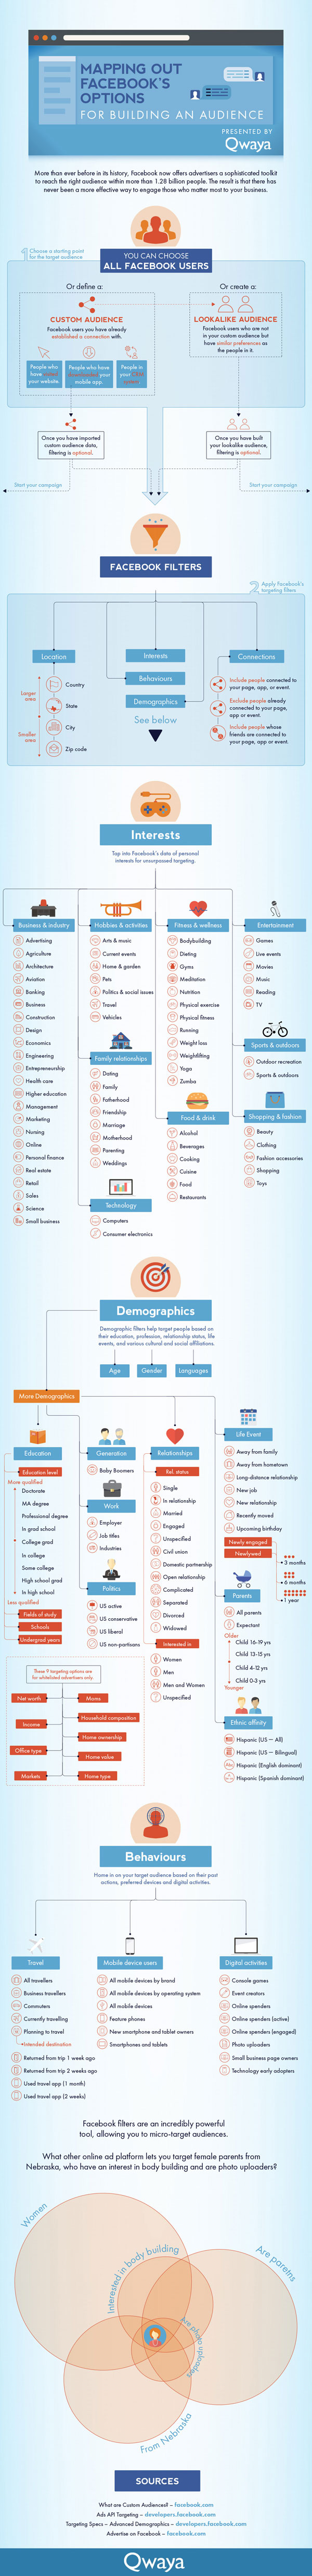 A Quick Rundown of Facebook Targeting Options [Infographic]